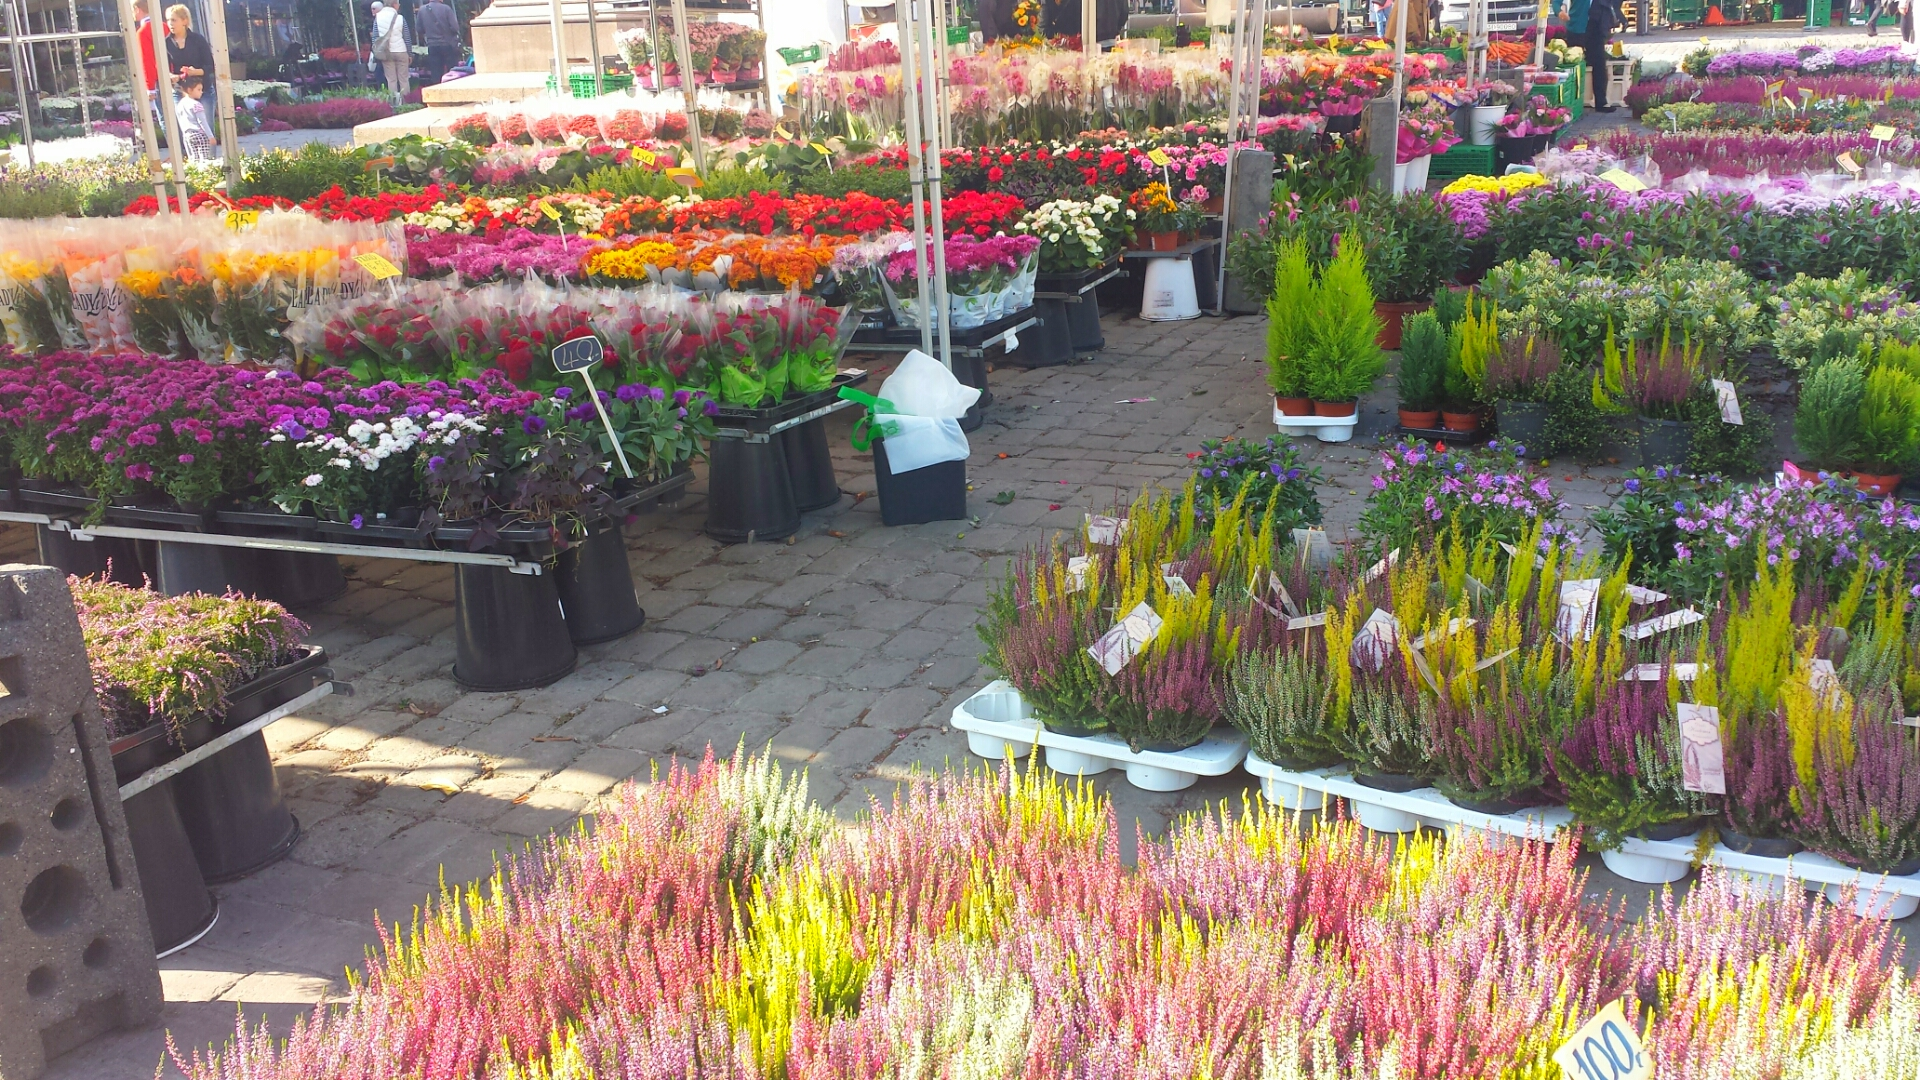 Colourful_Flower_Markets_Oslo_Norway